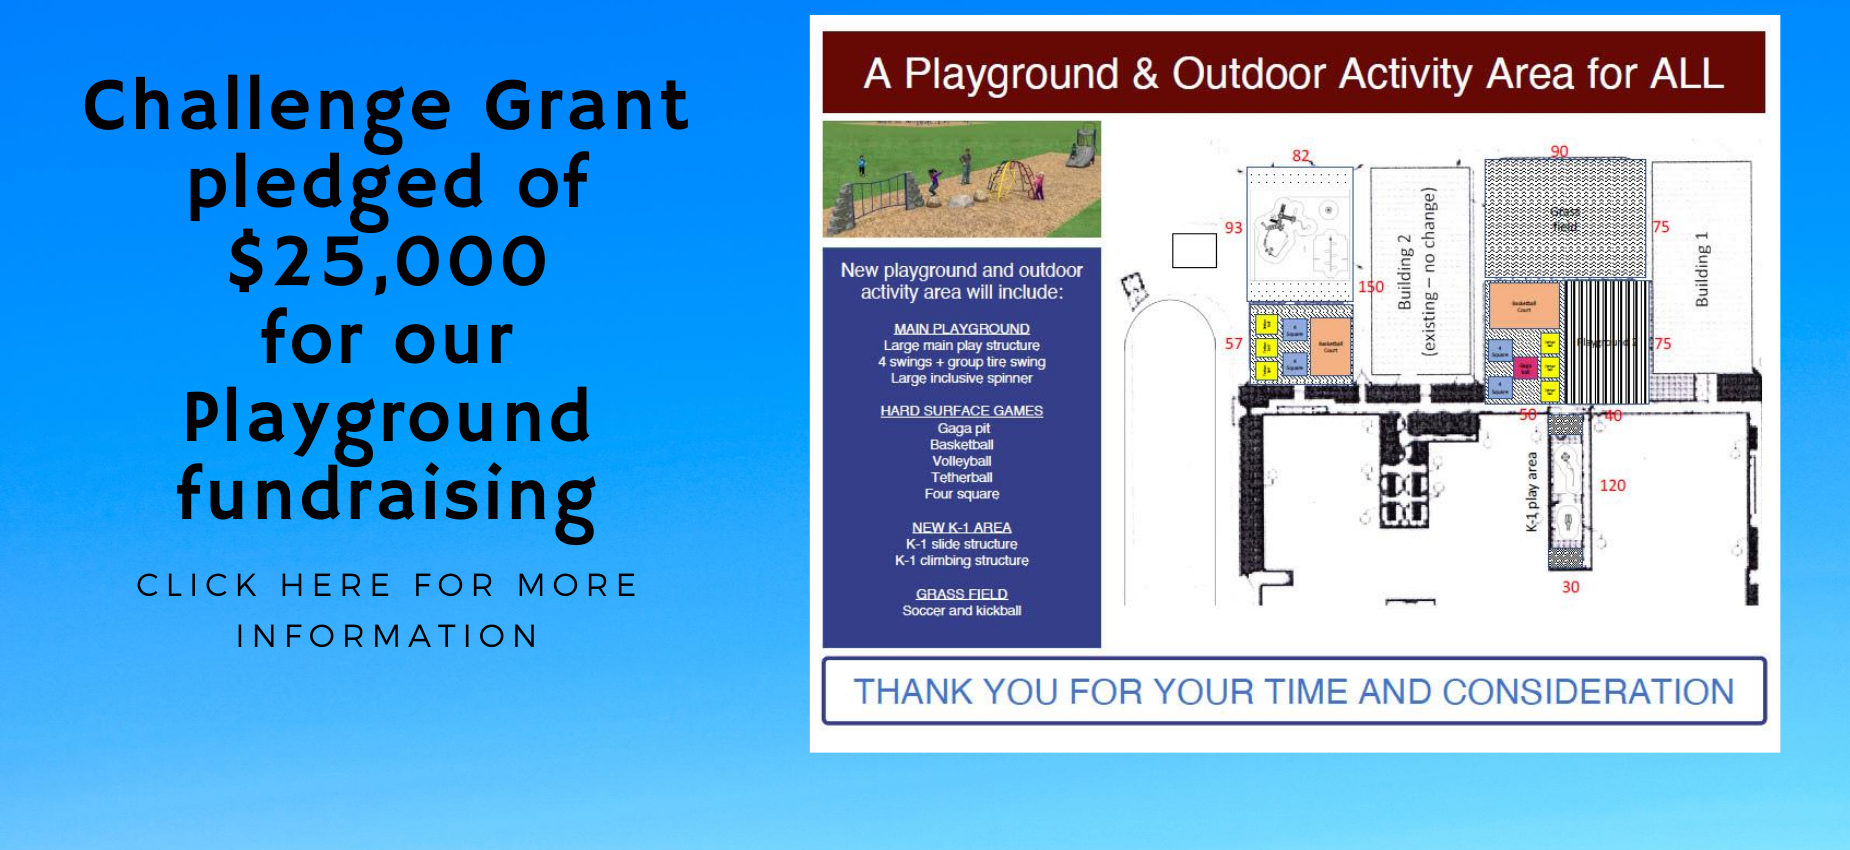 challenge grant playground brochure page 2 of 2